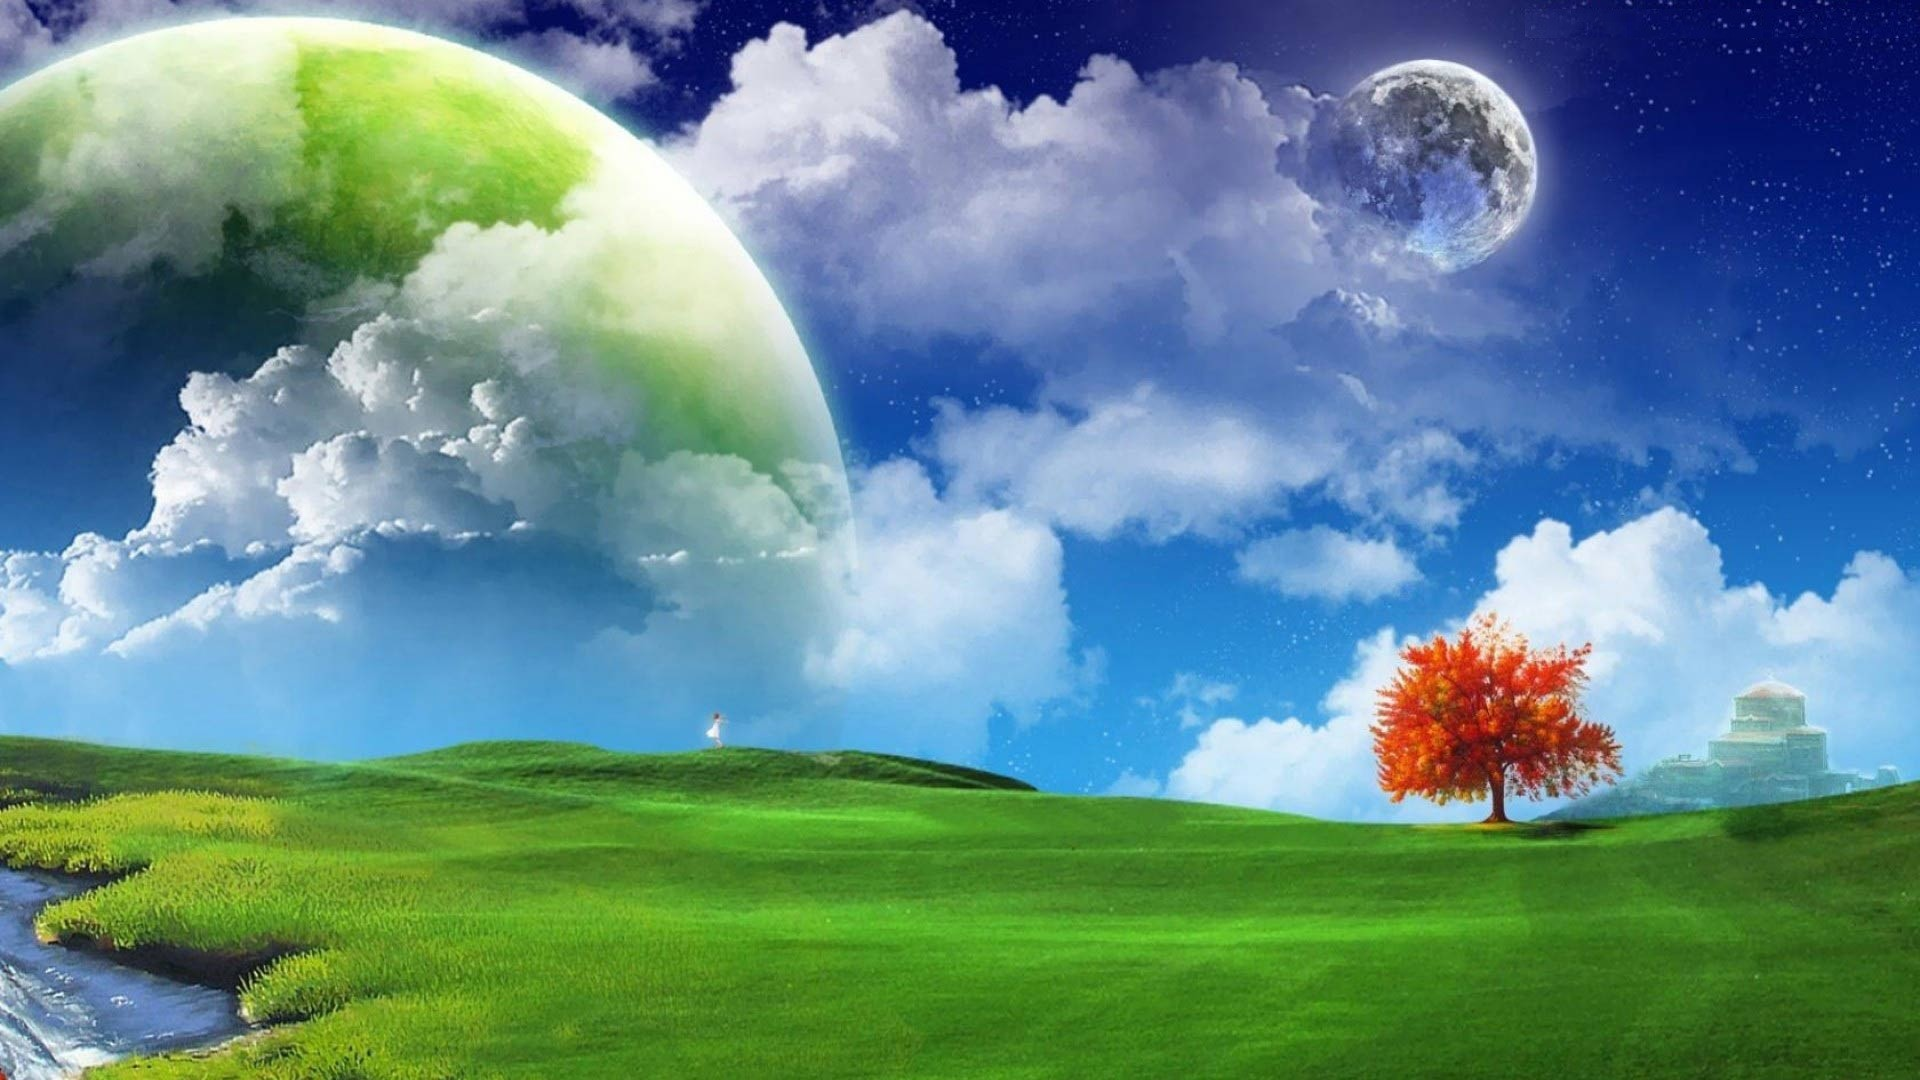 Wallpaper-3d-hd-Beautiful-3d-pictures-for-3d-